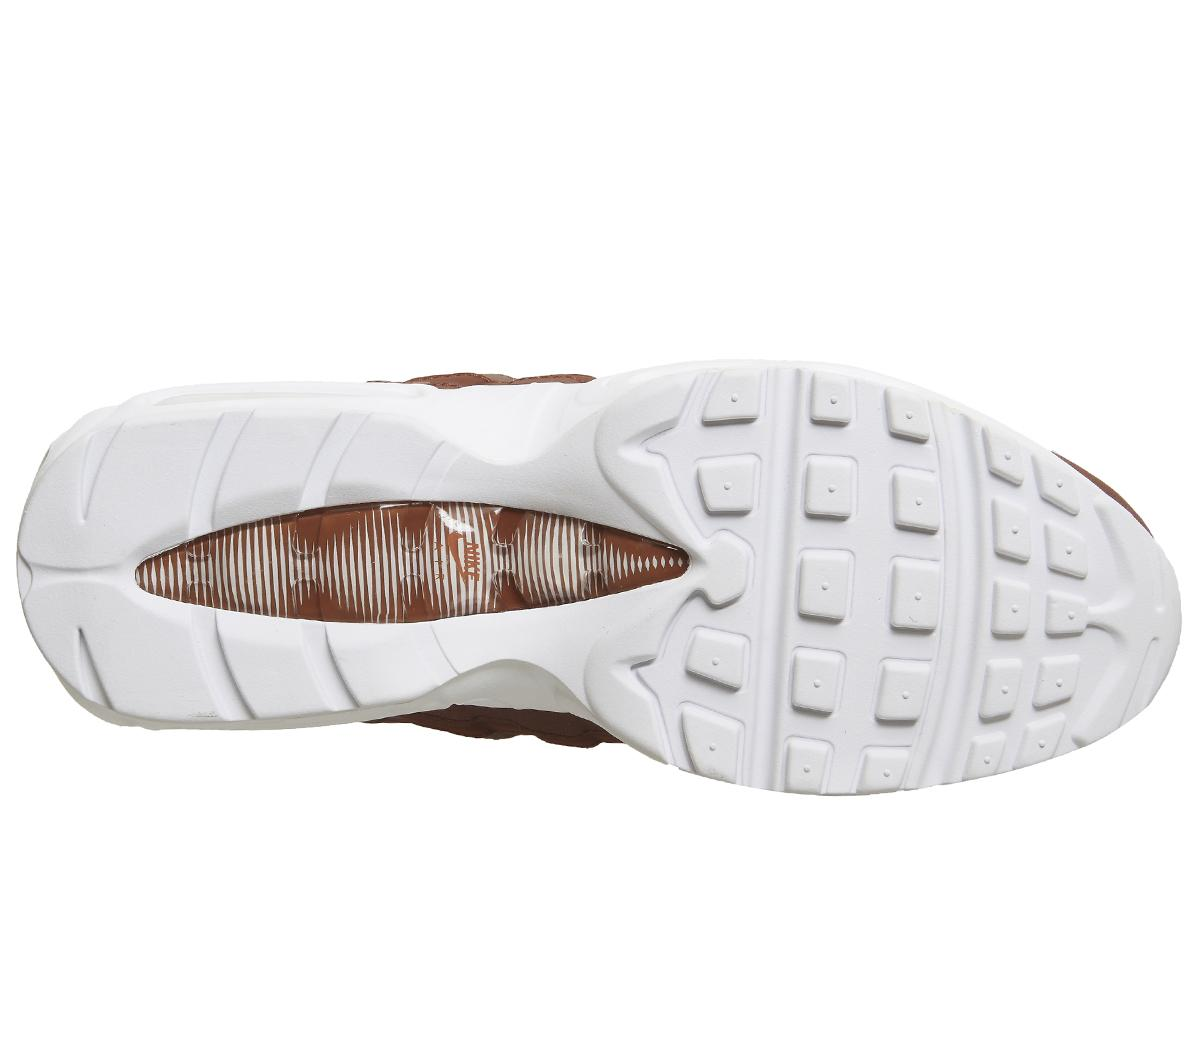 Nike Synthetic Air Max 95 Trainers in Brown for Men